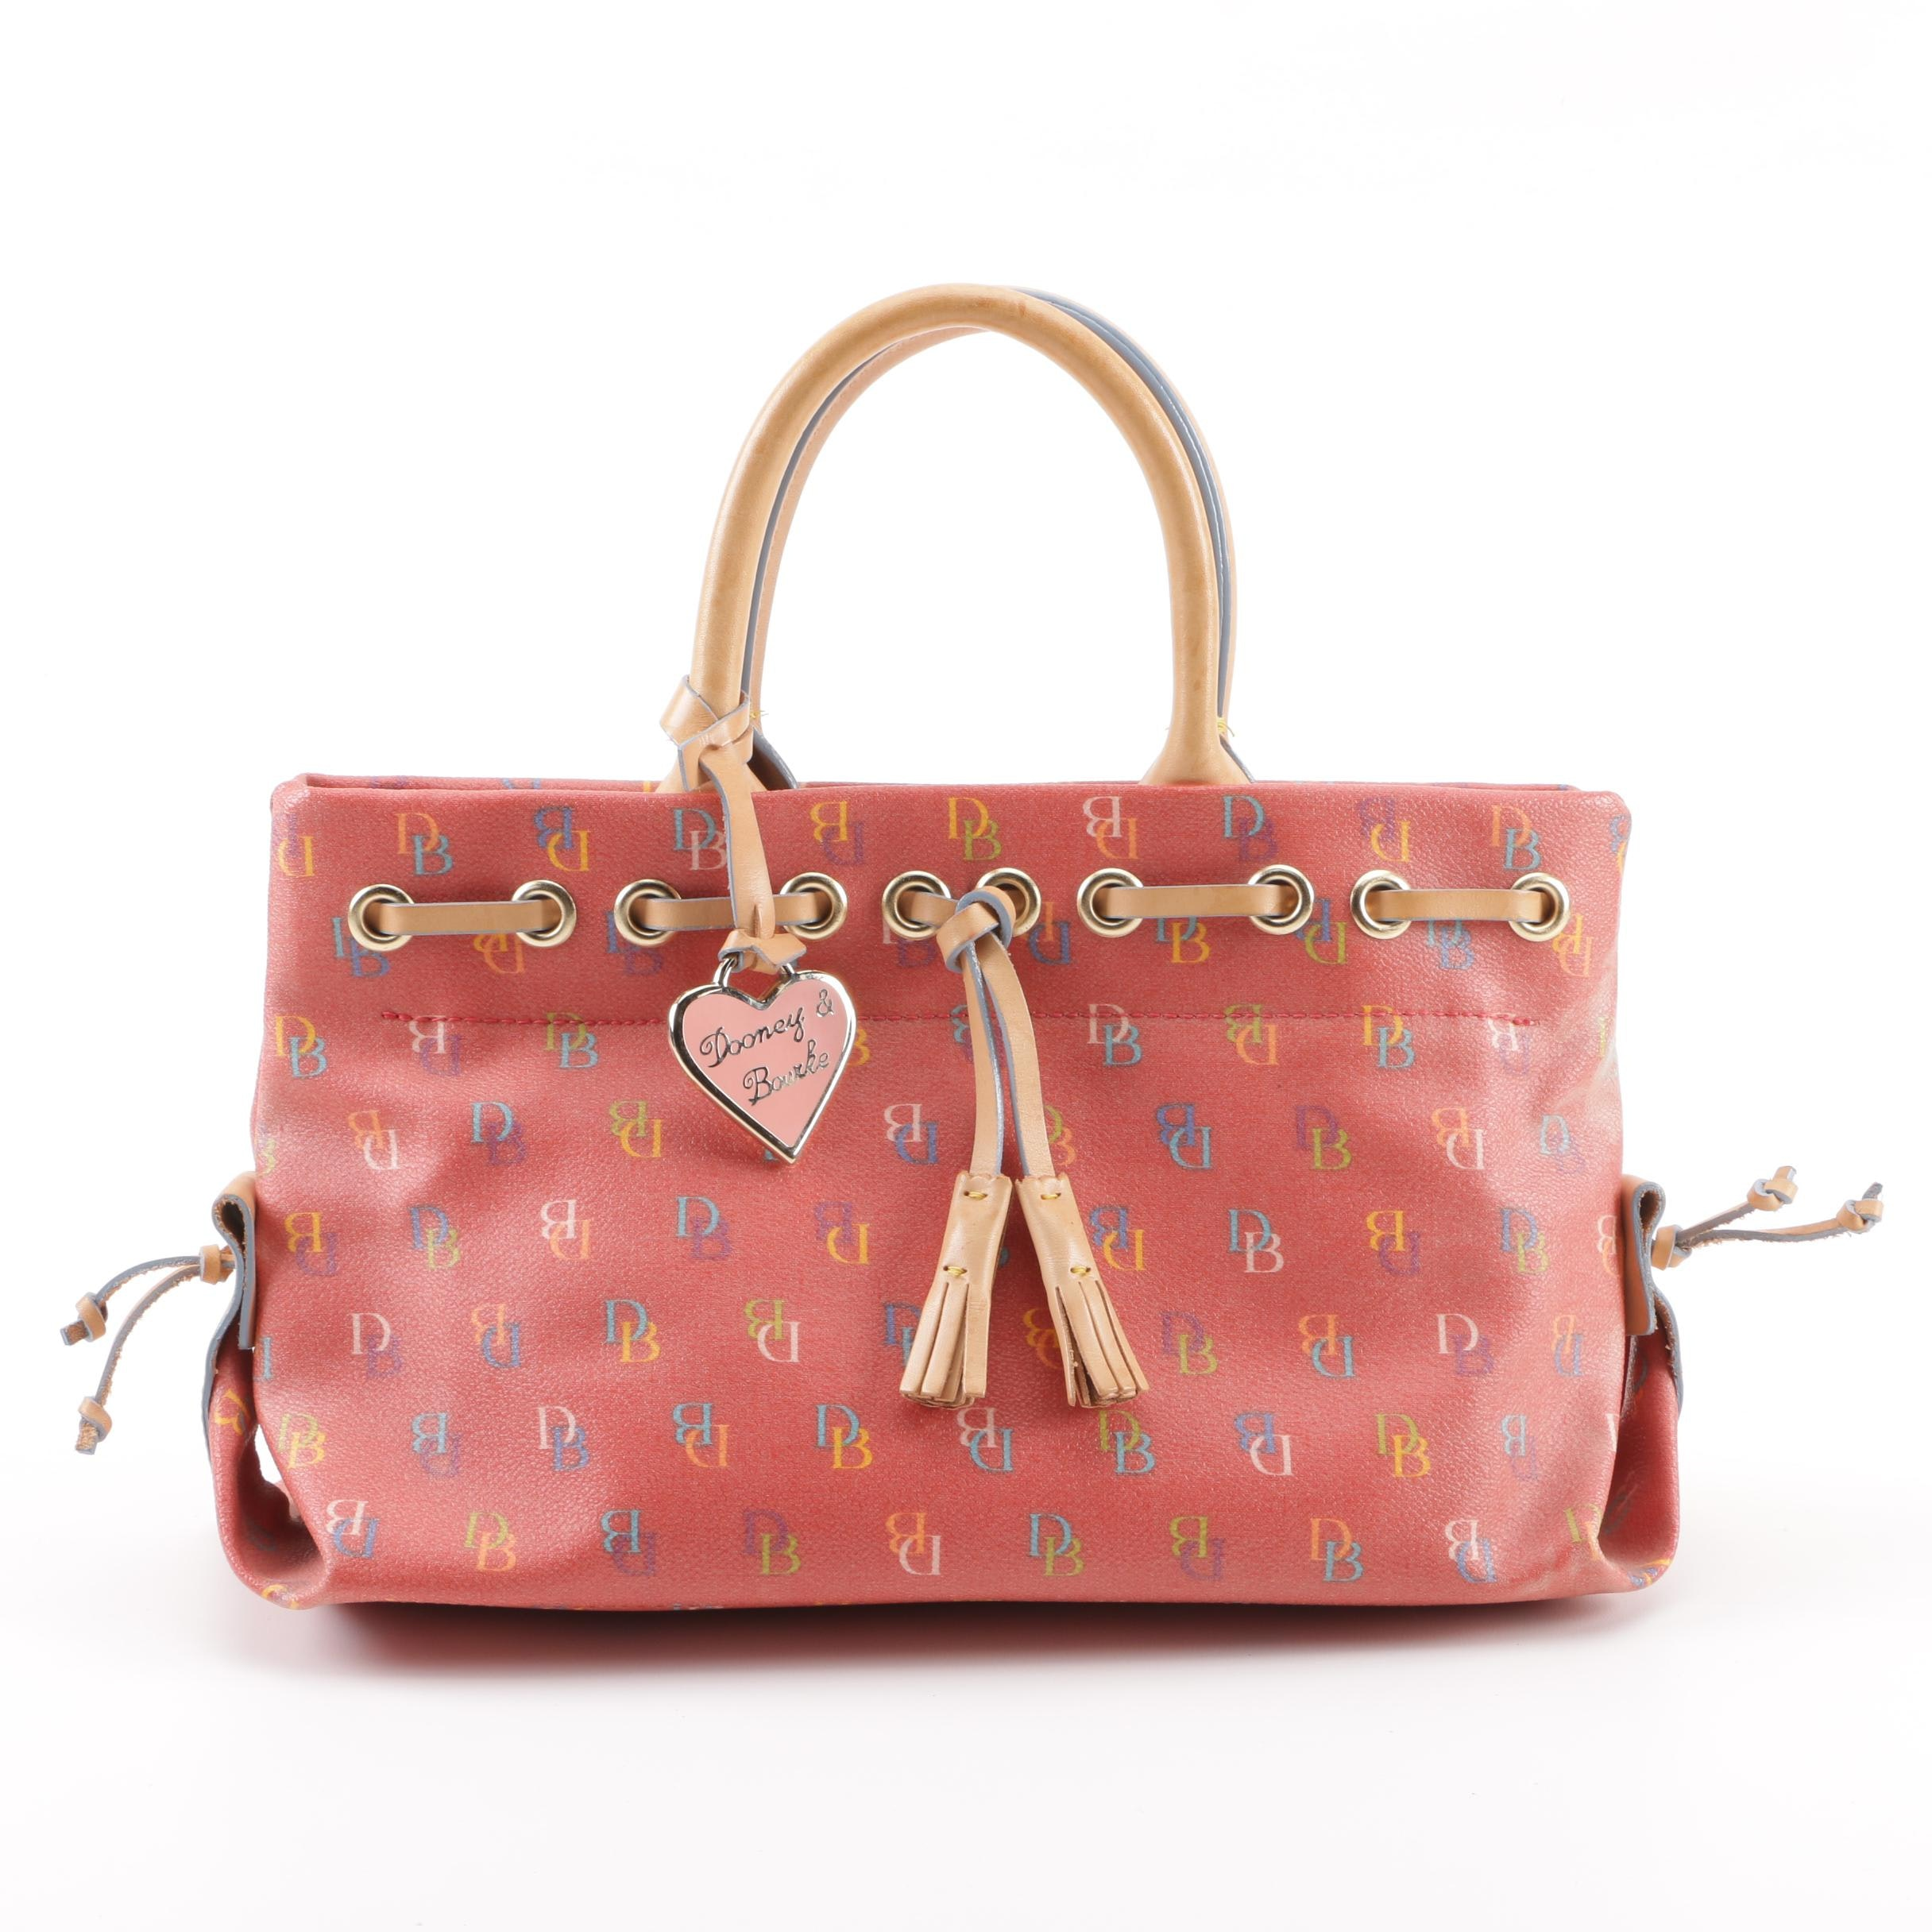 Dooney & Bourke Signature Multicolored Coated Canvas Handbag